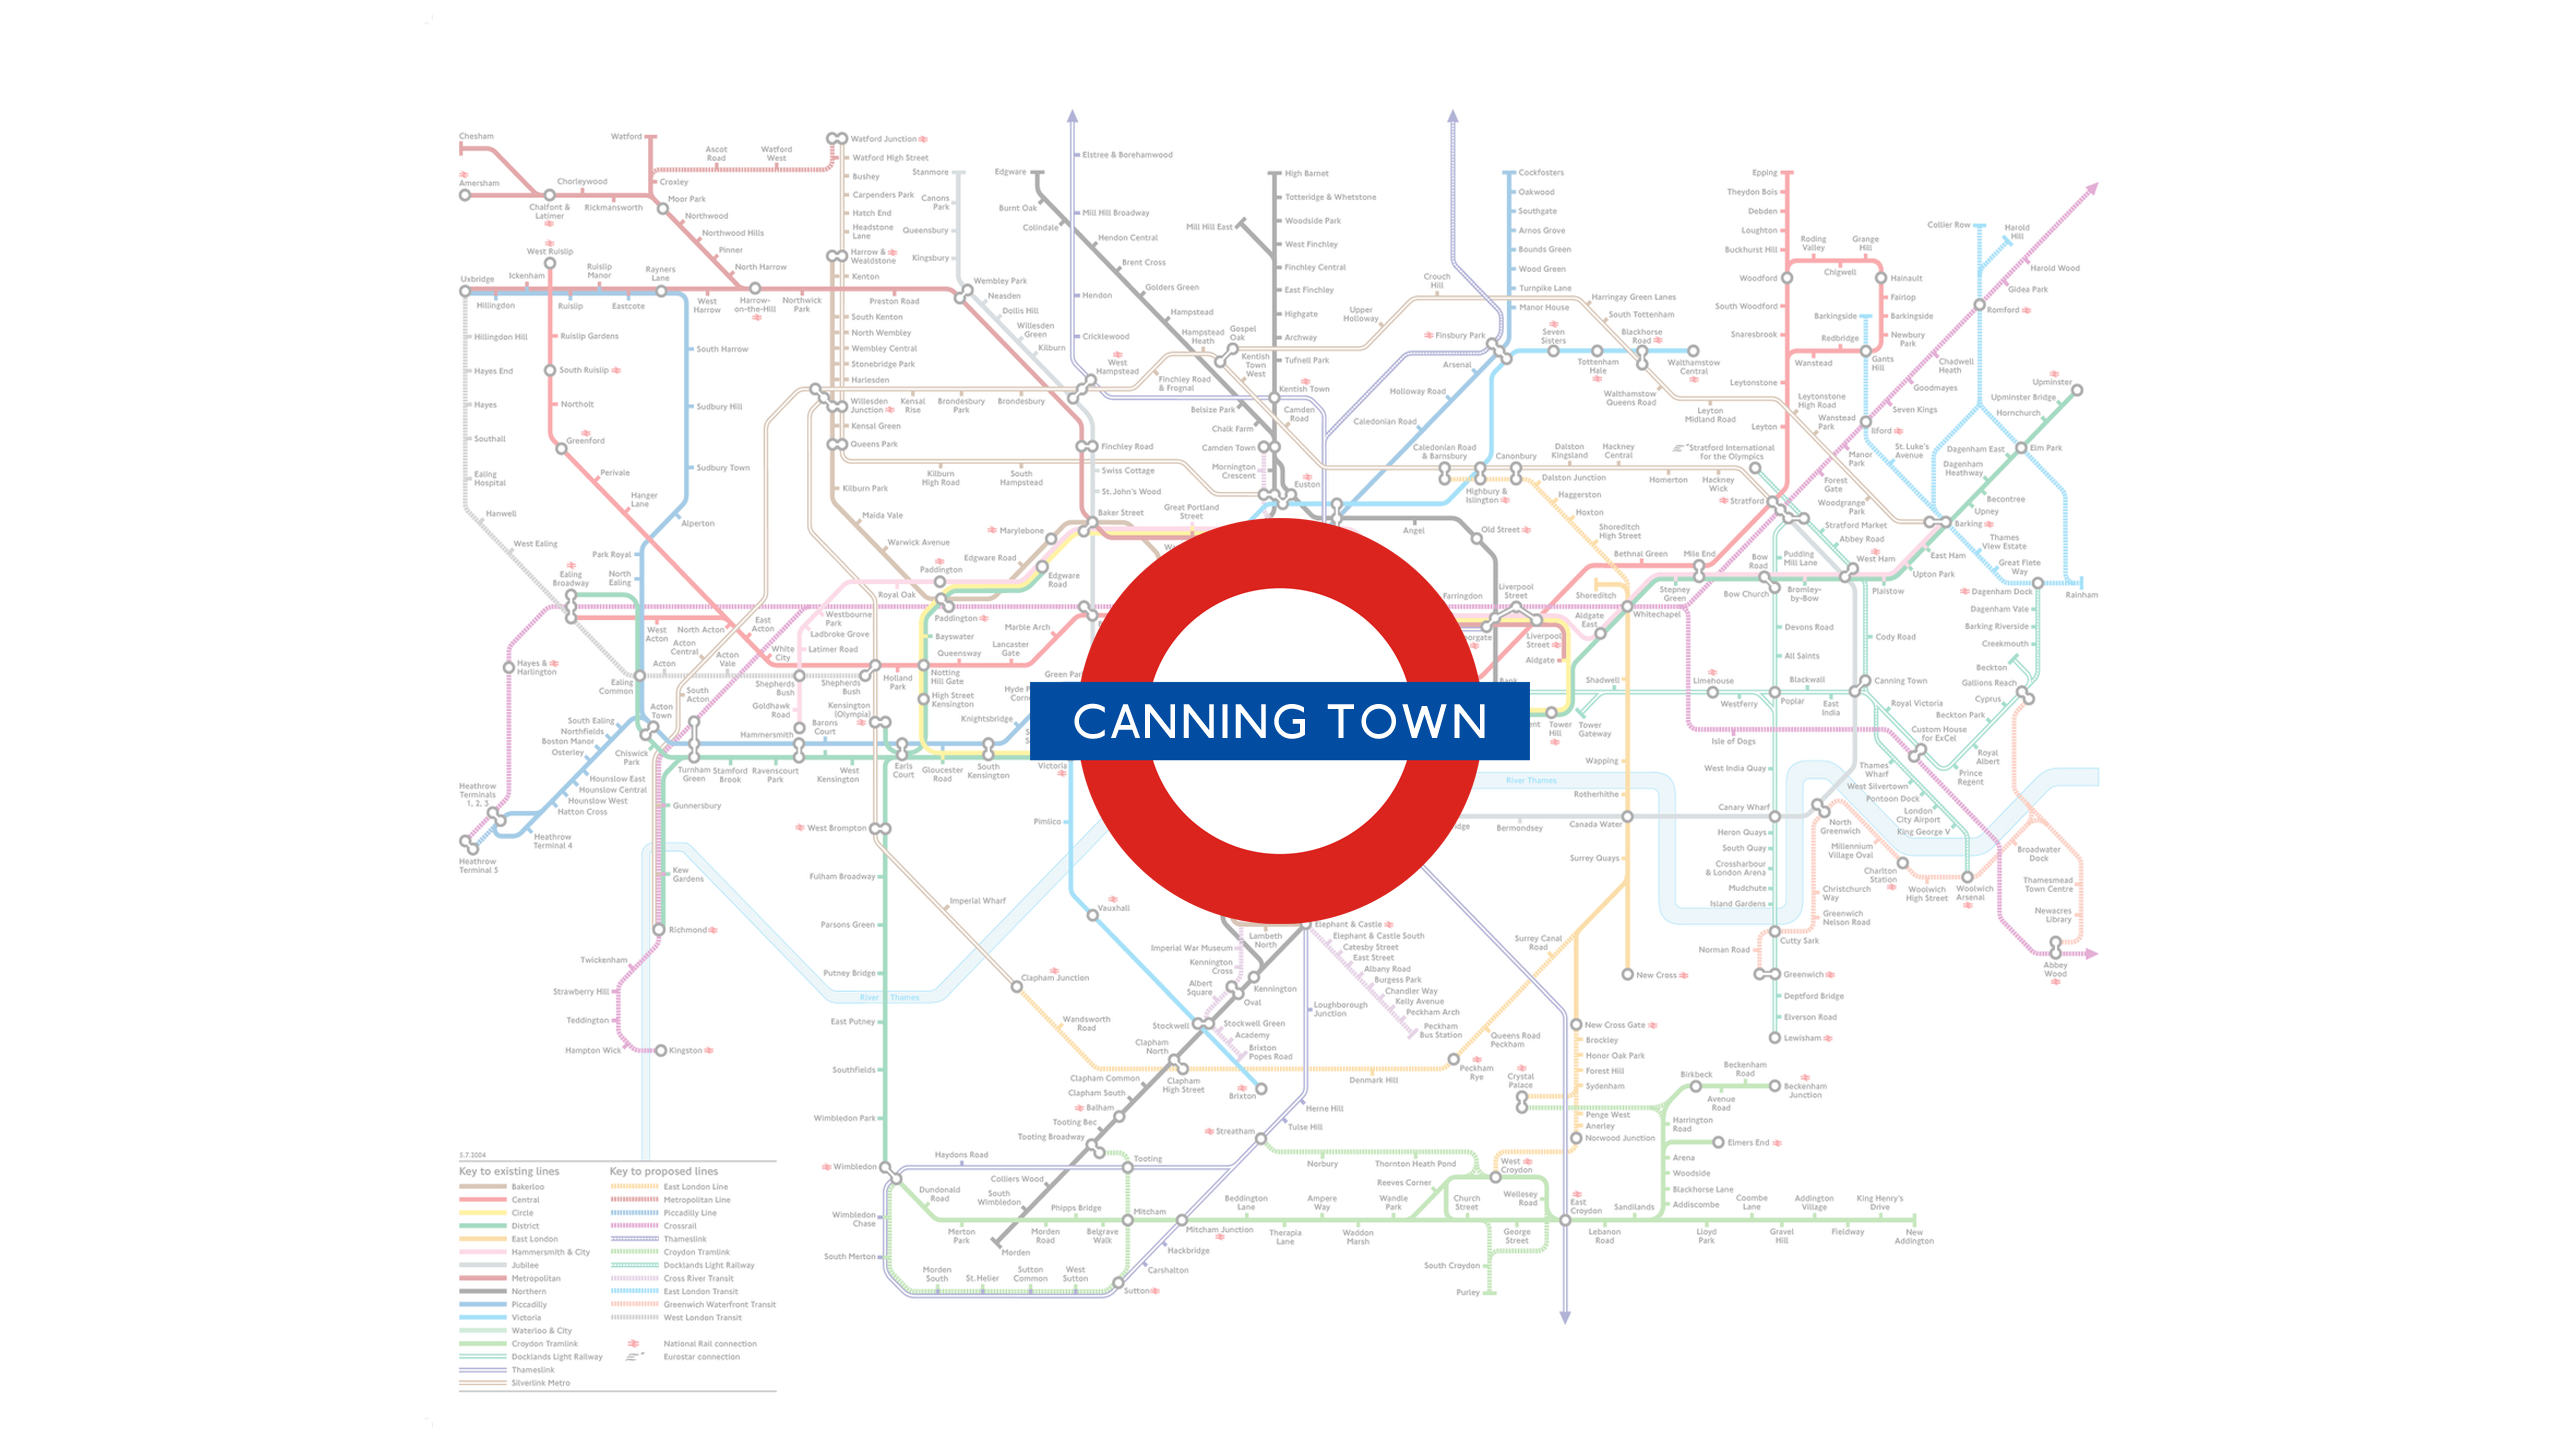 Canning Town (Map)